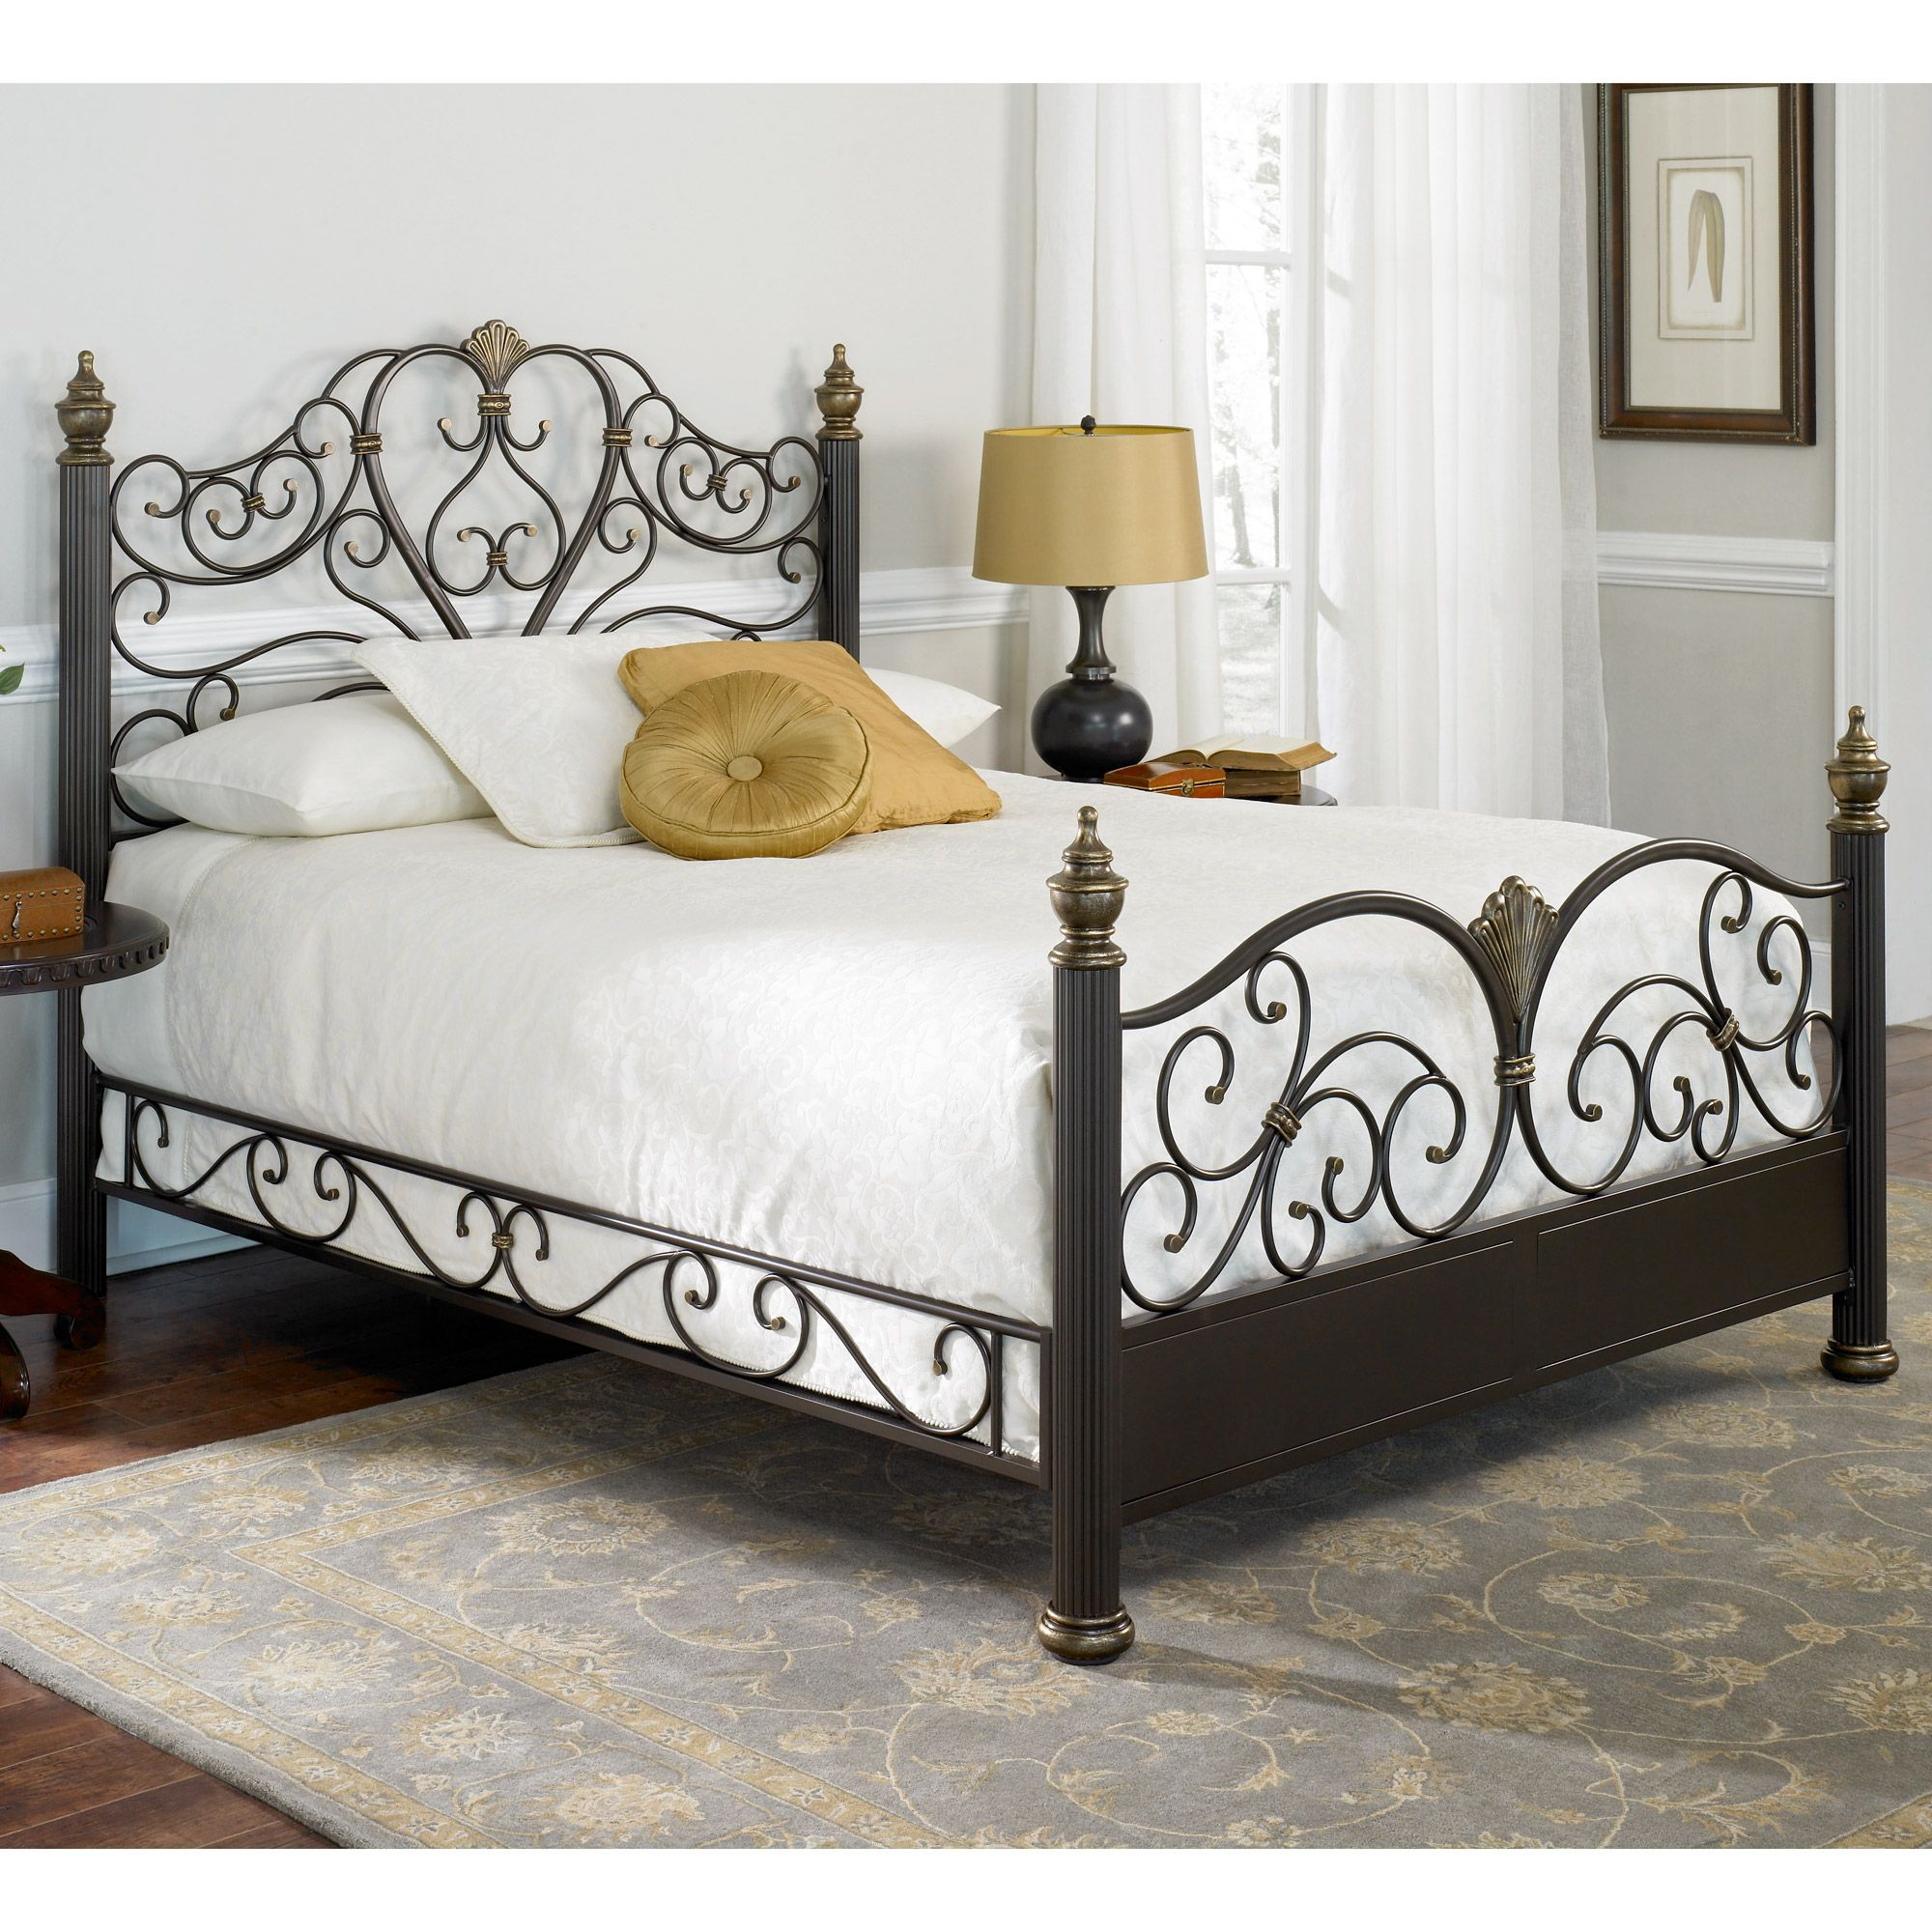 Elegance iron bed iron and metal beds for Metal bedroom furniture